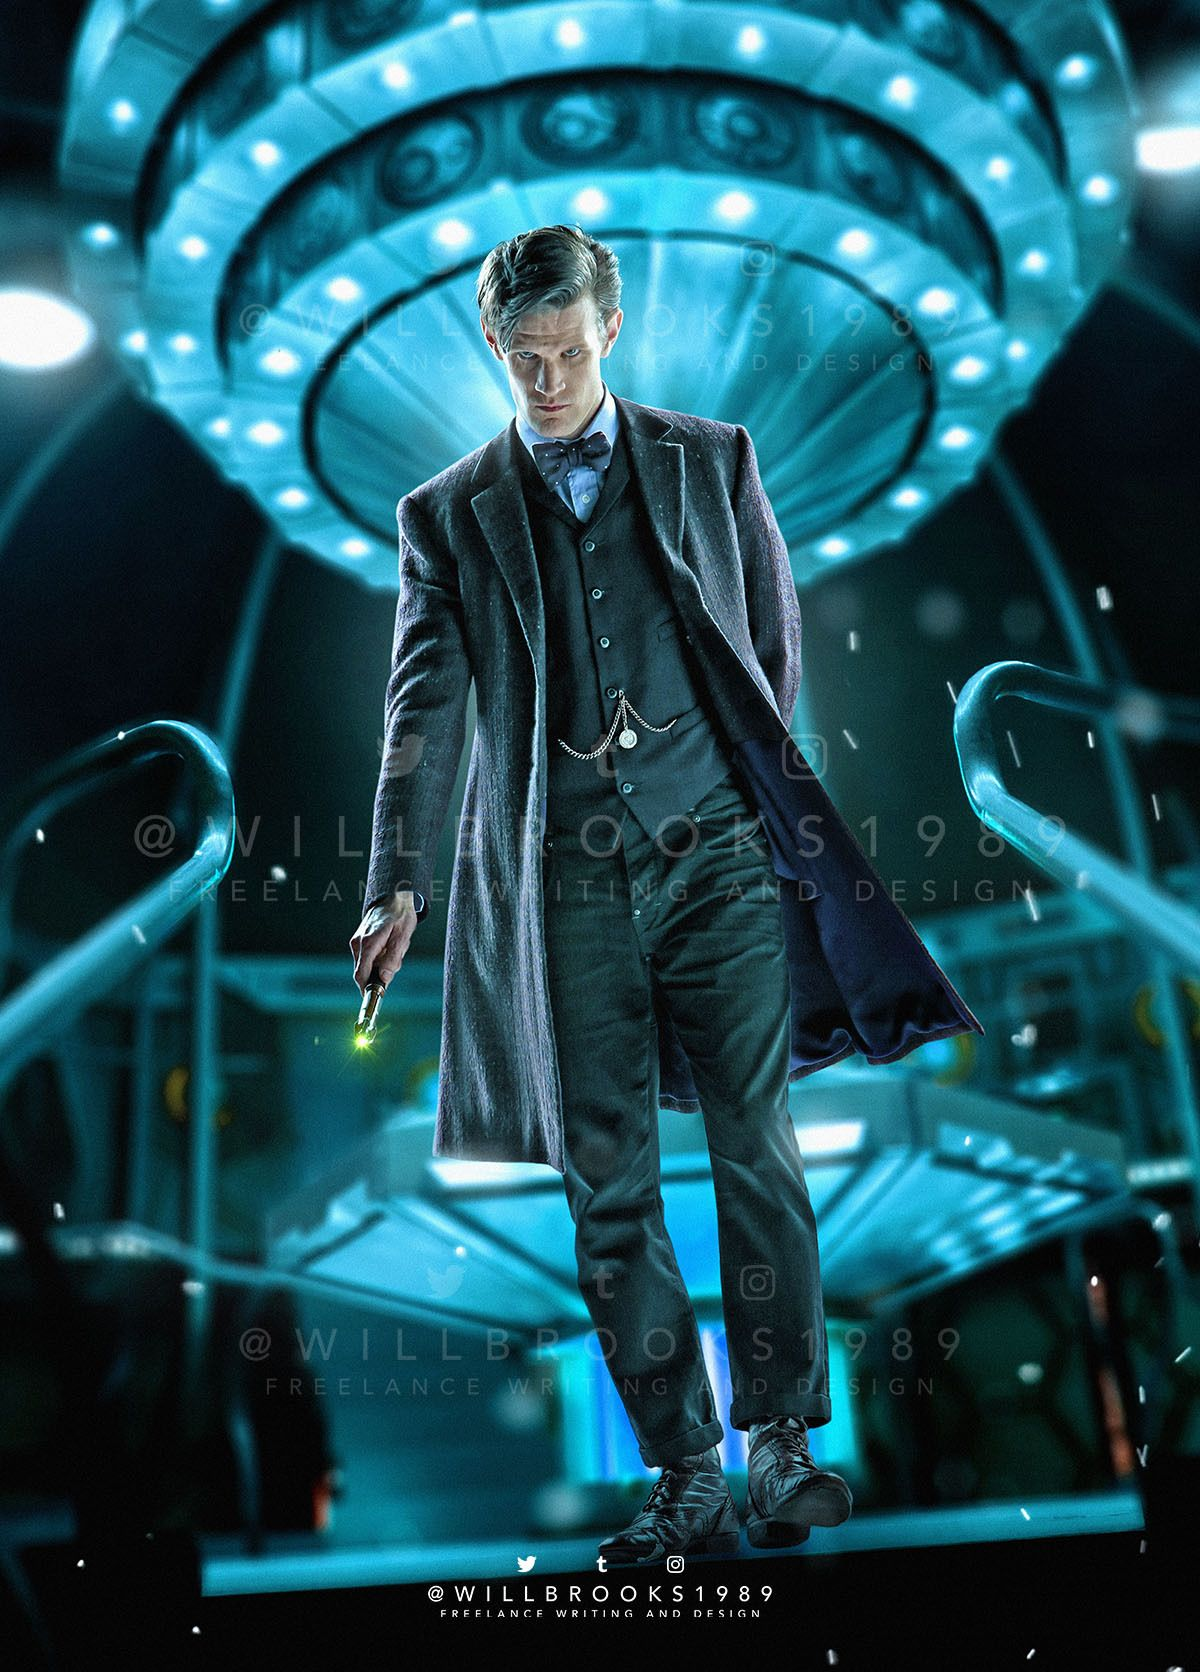 Miss Matt Smith Check Out Www Traestratton Com And Read Second Star To The Right It S A Fun Free Sh Matt Smith Doctor Who Doctor Who Wallpaper Doctor Who